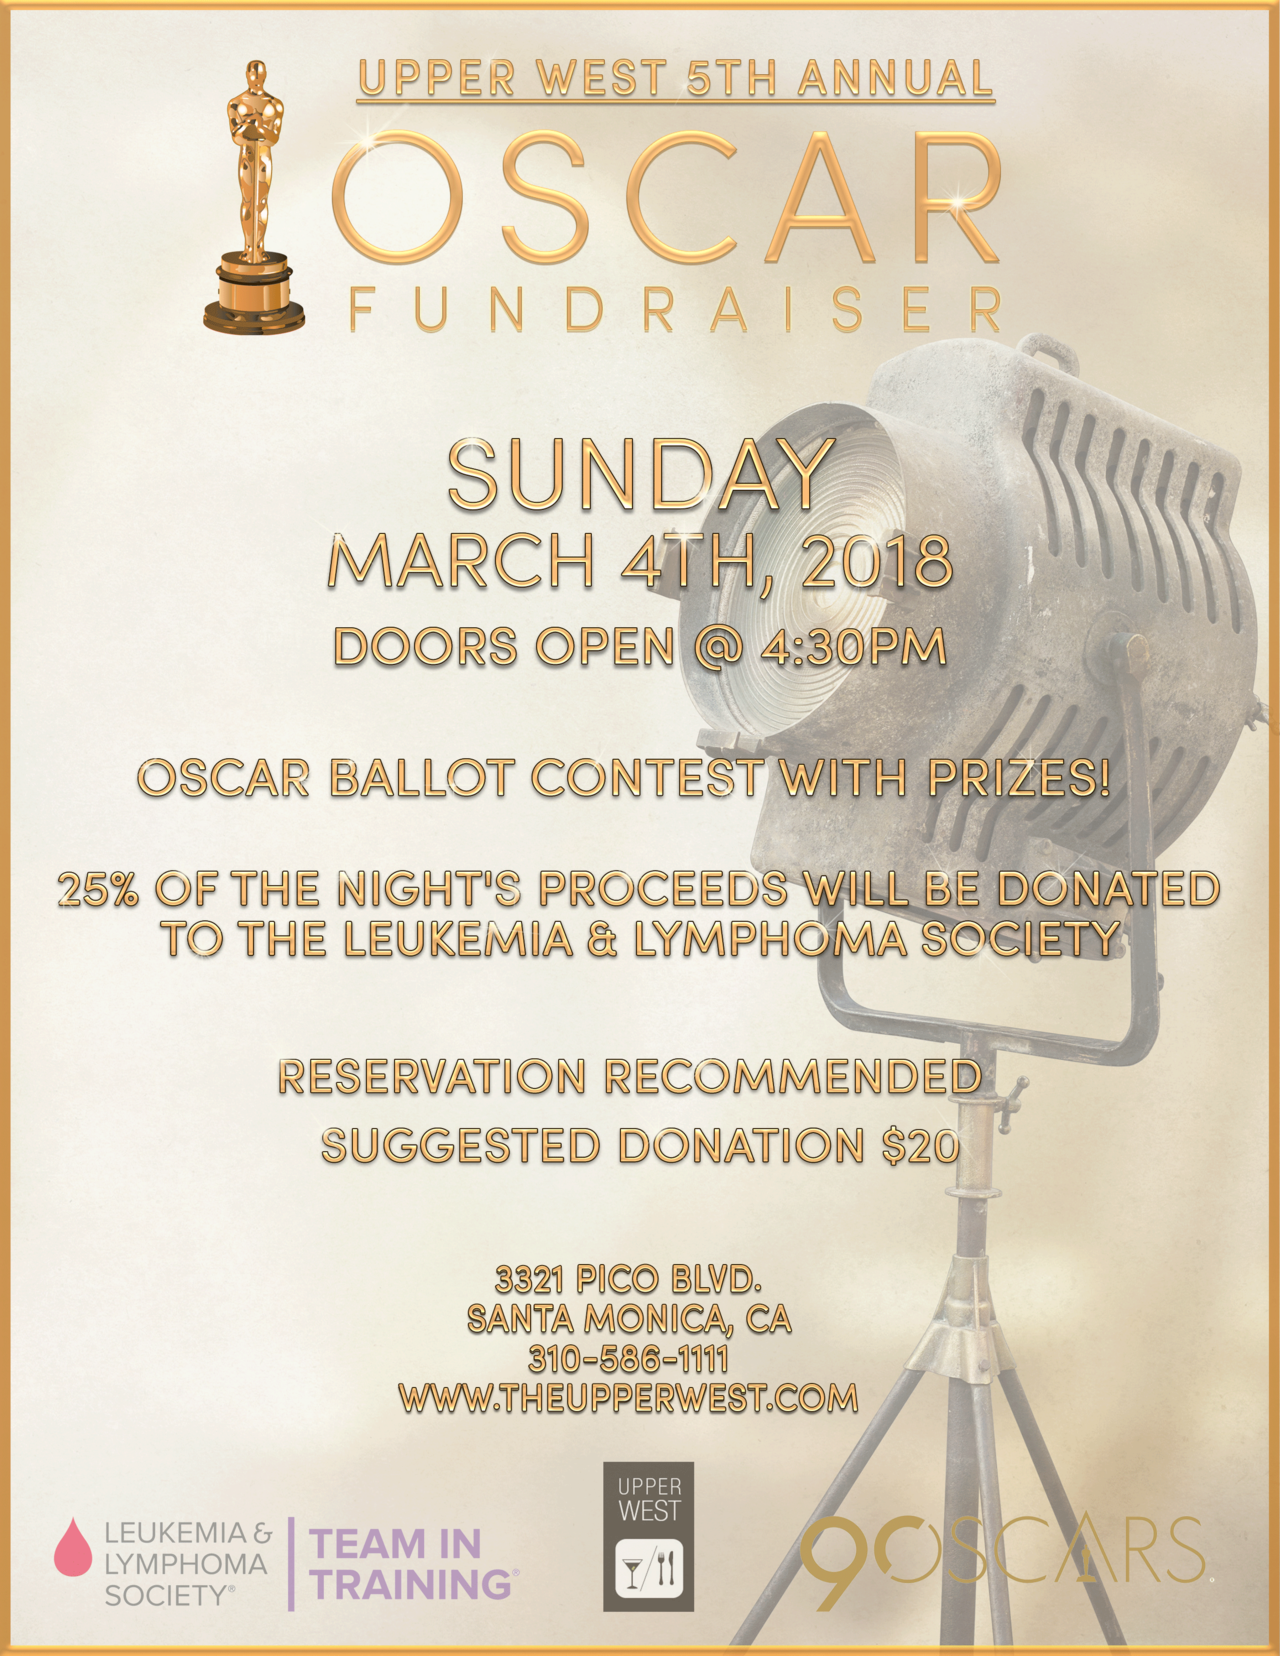 5th Annual Oscar Fundraiser at Upper West